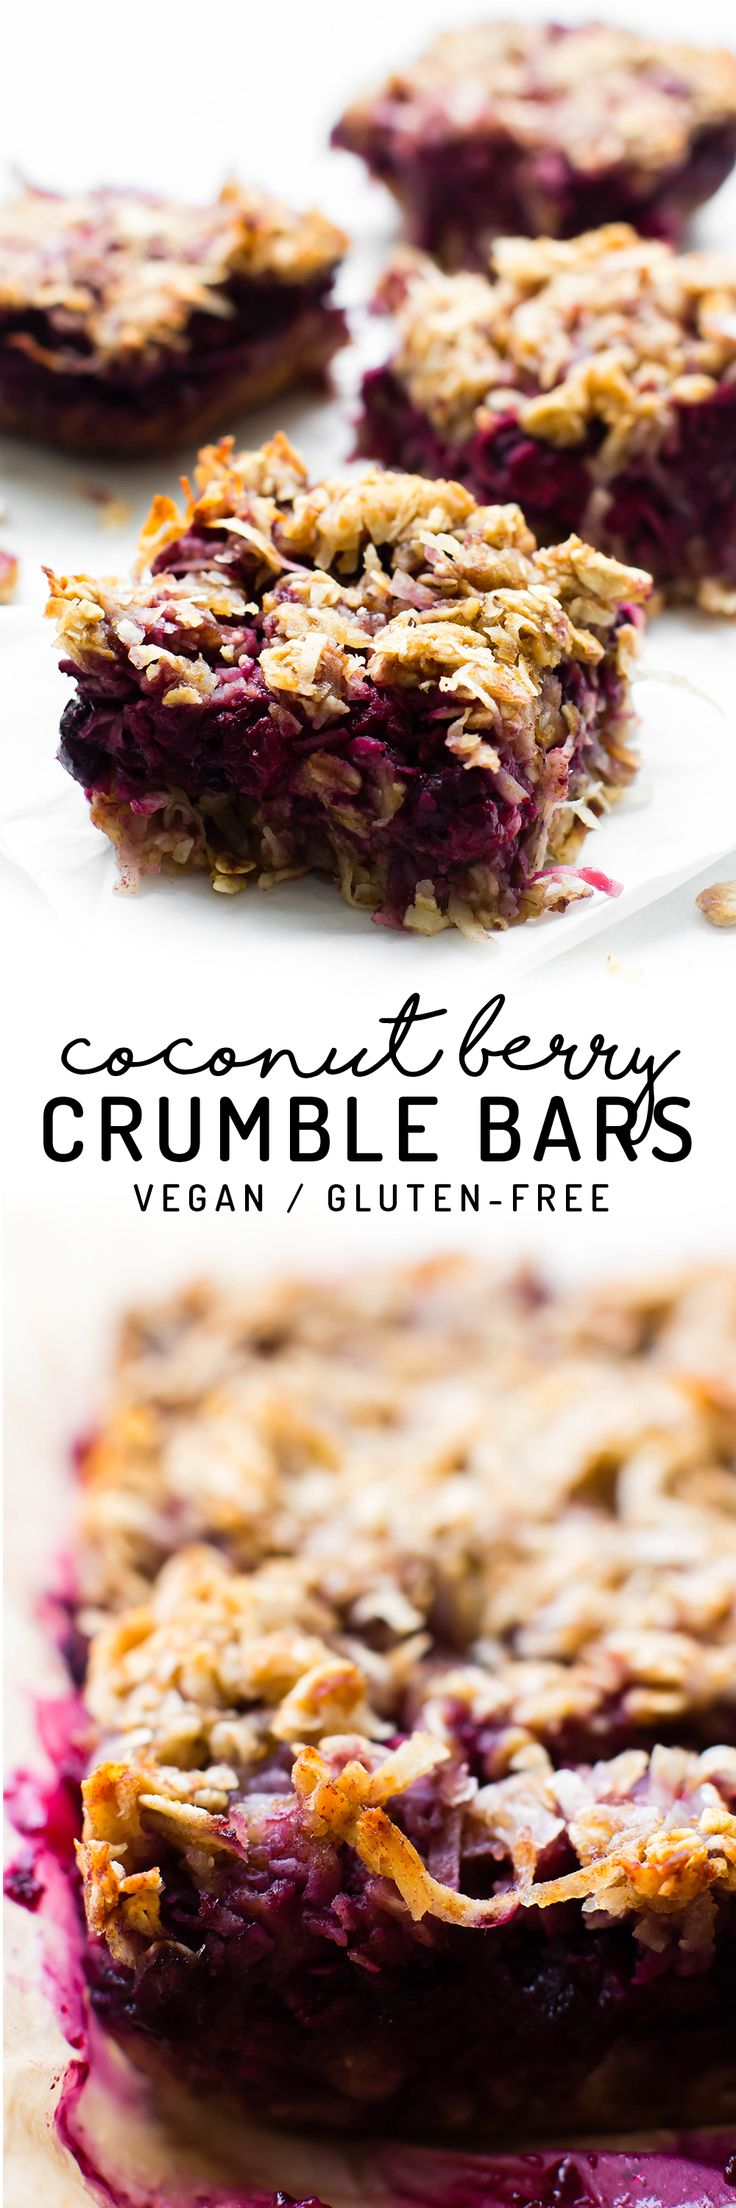 Mixed berries blanketed with oil-free oat streusel makes these Coconut Berry Crumble Bars an easy healthy snack or dessert with ice cream on top! Vegan, gluten-free, refined sugar-free.